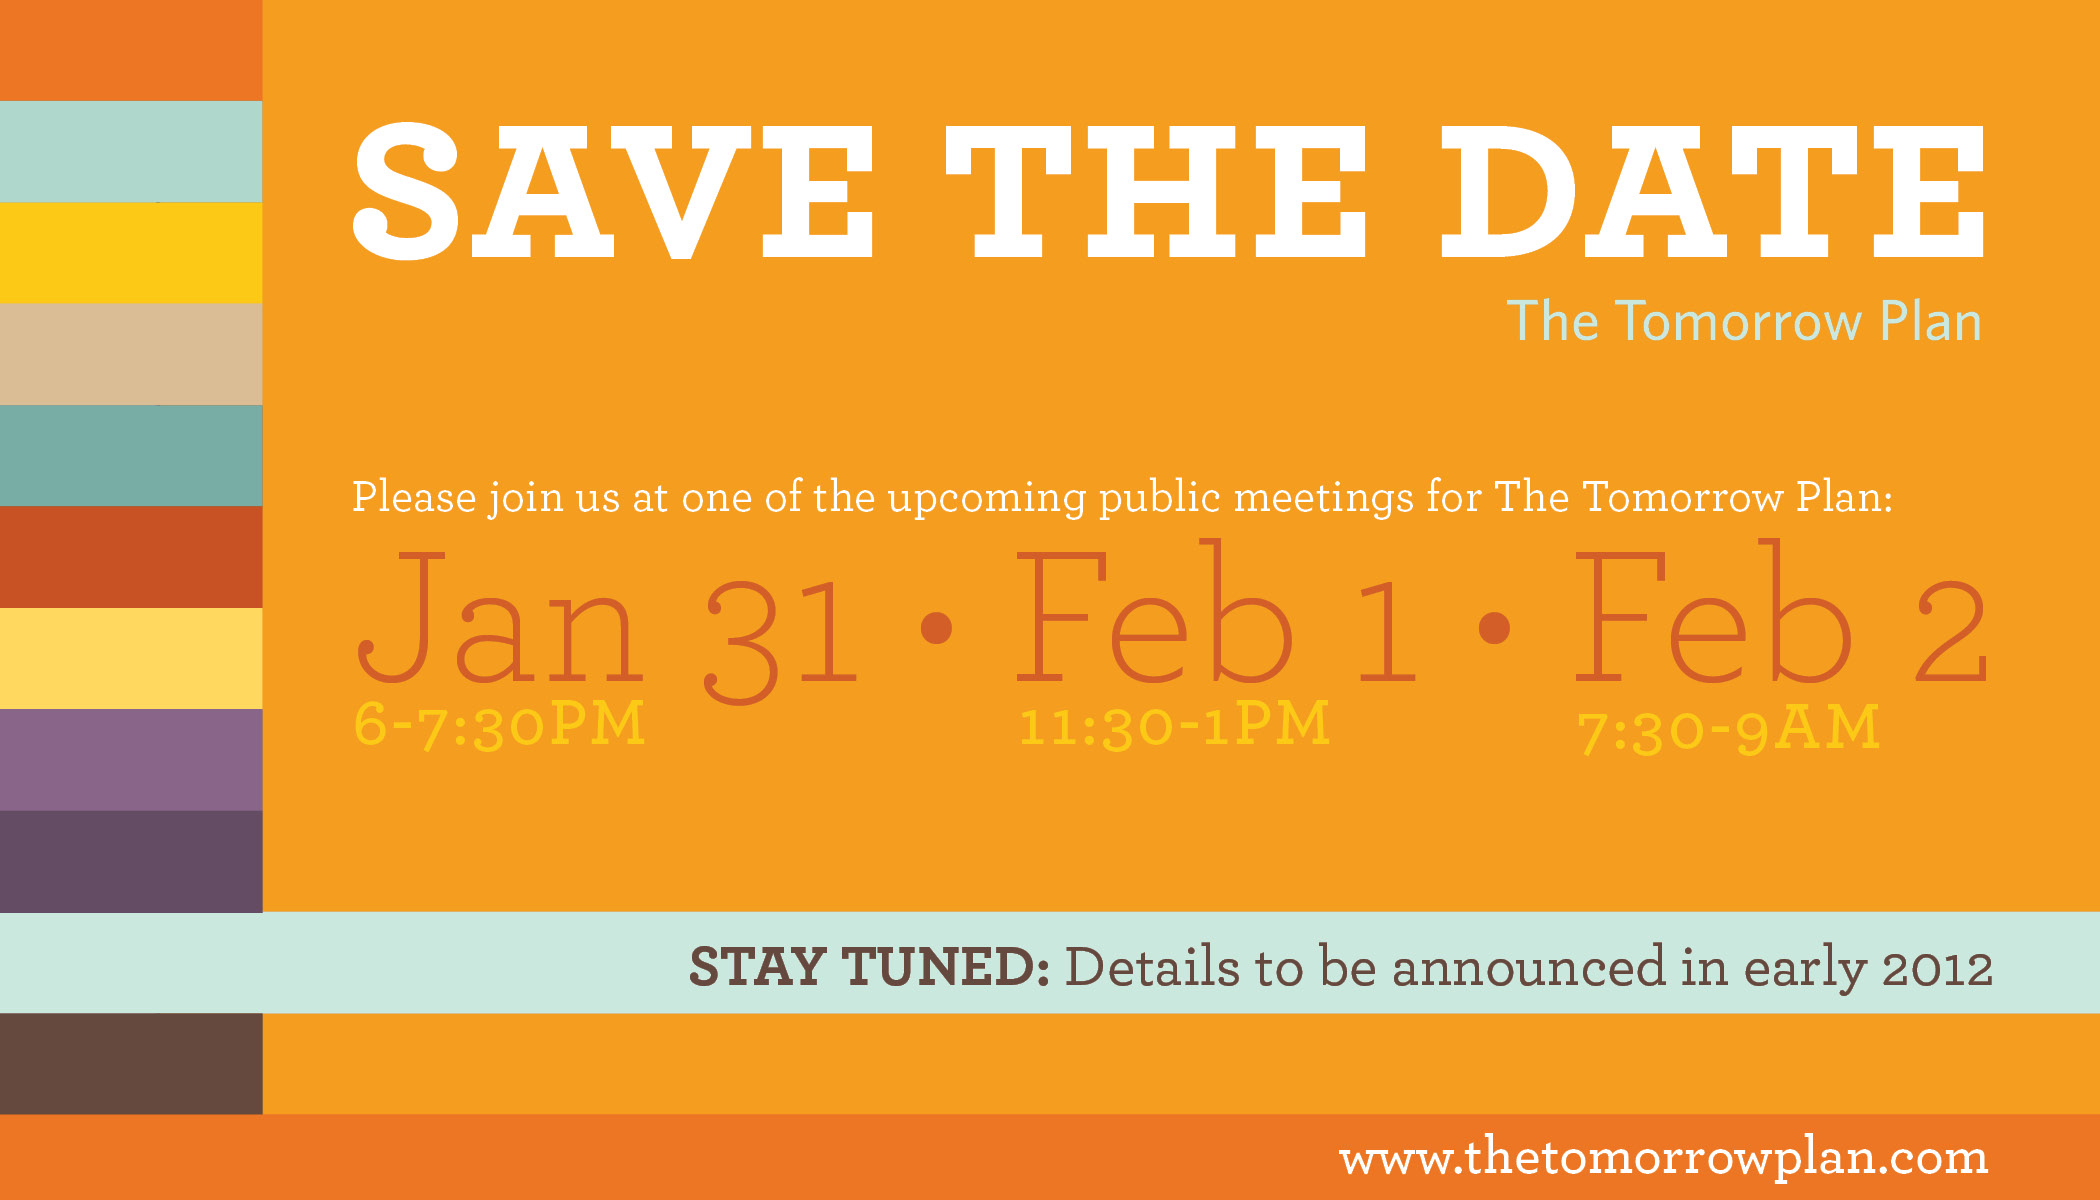 Save the Date | The Tomorrow Plan